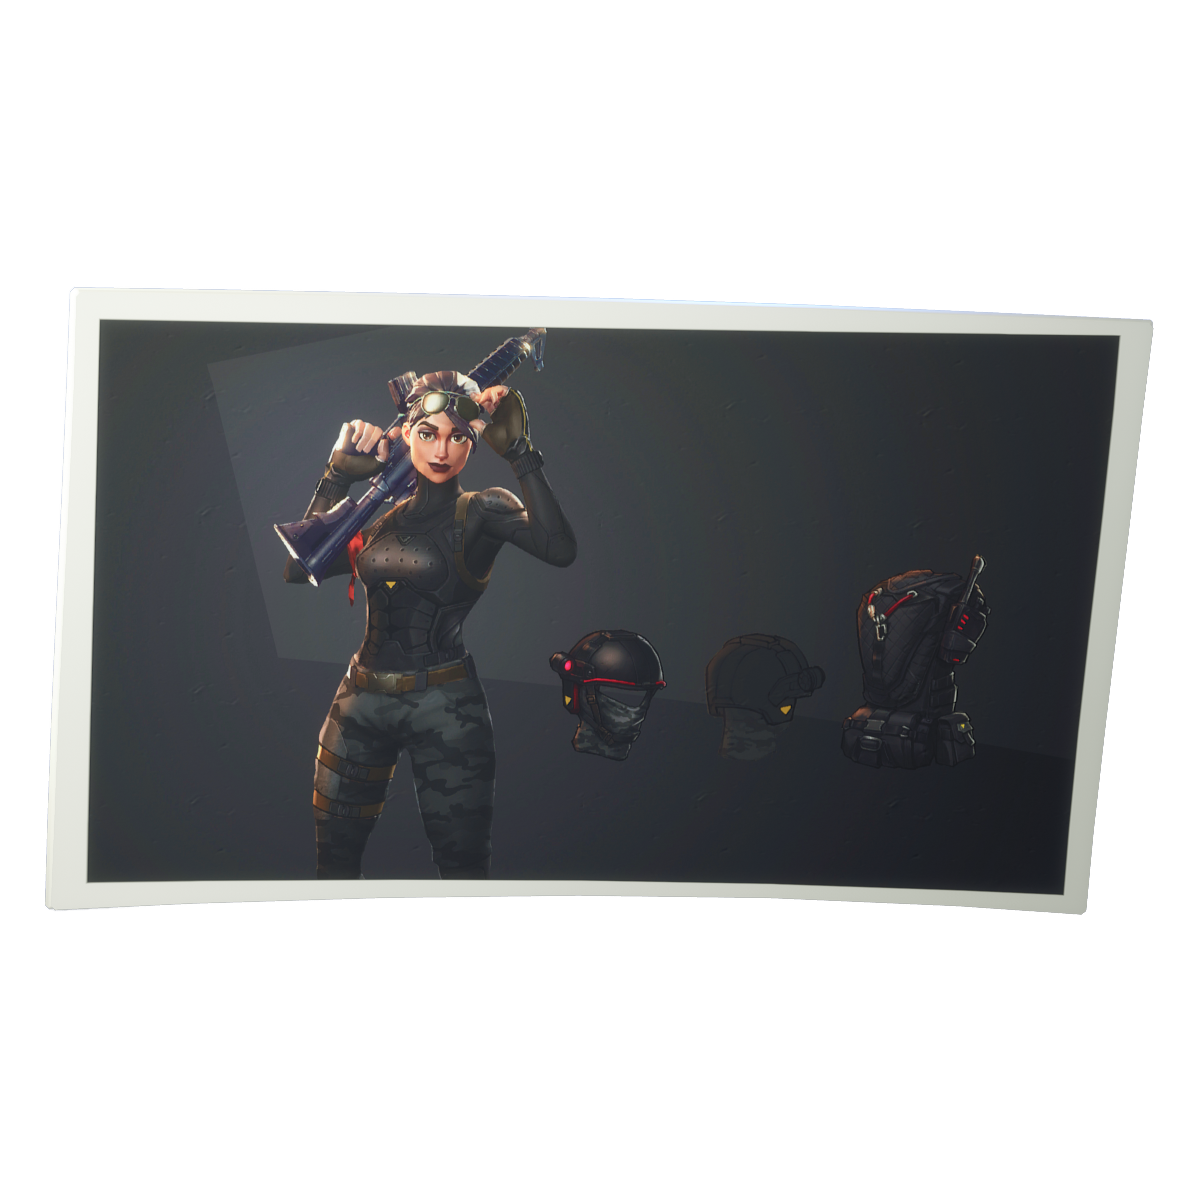 Fortnite Elite Agent PNG Image - PurePNG